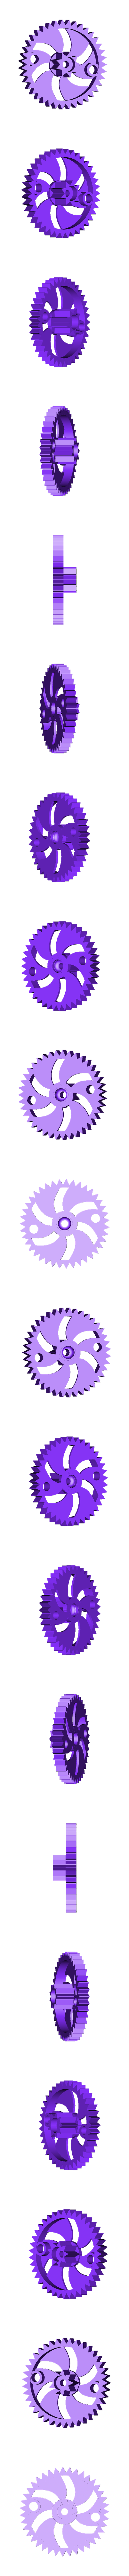 40mmGear.stl Download free STL file Crazy Cogs - Gear Play Set • 3D printer template, PapaBravo